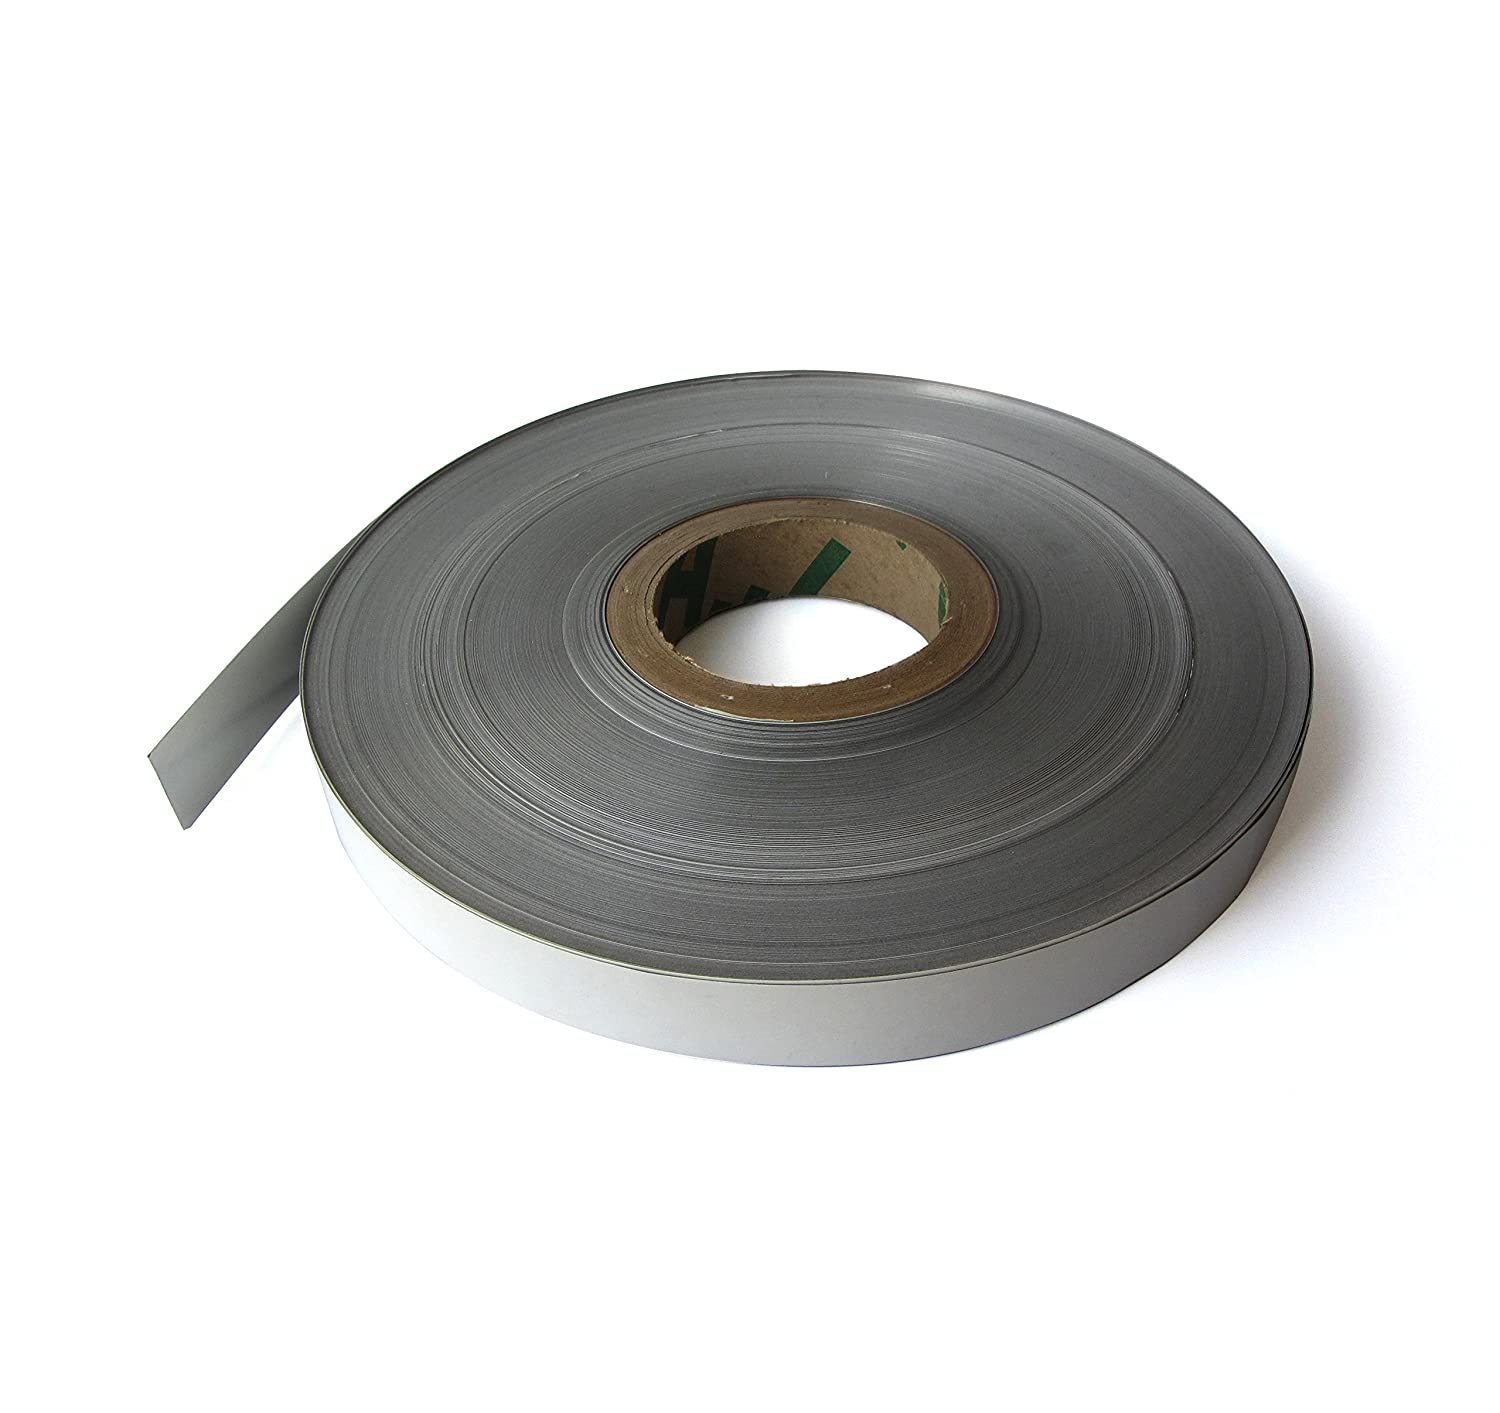 Magnetic Tape With Indoor Adhesive - 1x200'x.030 - Great for Displays, Arts & Crafts and Much More Magnum Magnetics